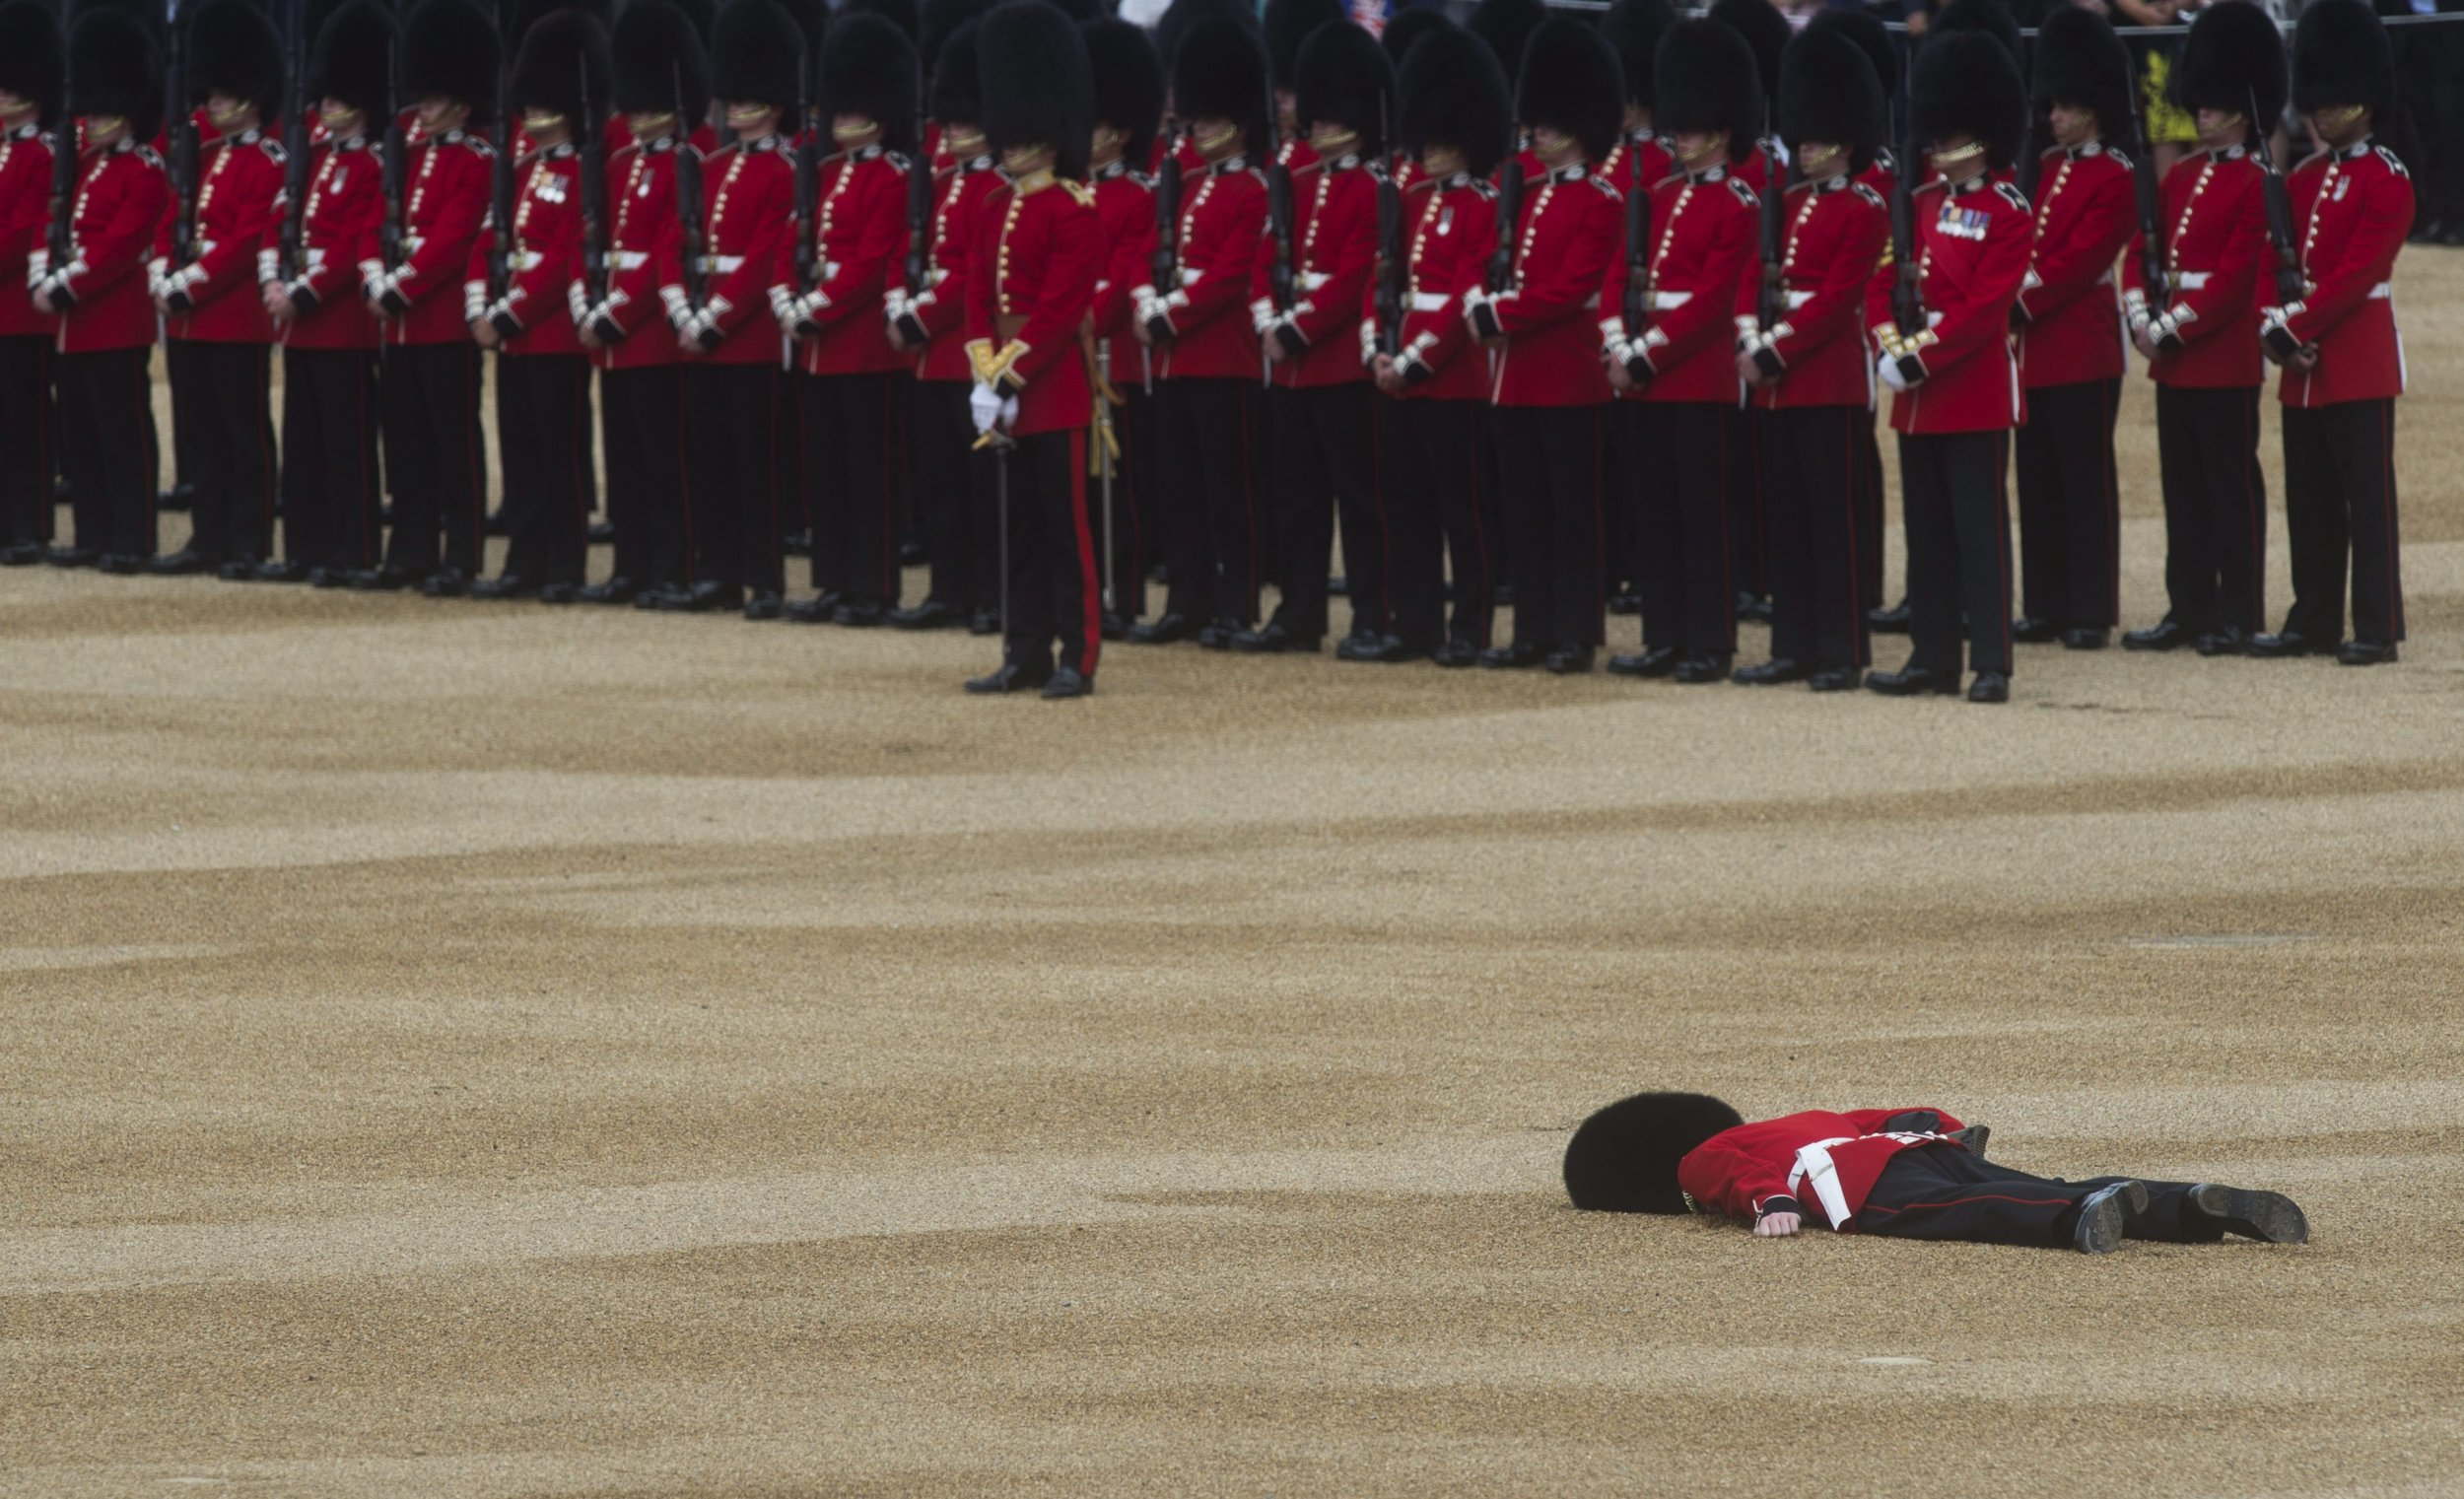 epa05356713 A guardsman collapses during the Trooping of the Color Queen's 90th birthday parade on Horse Guards Parade, central London, Britain, 11 June 2016. The annual Queenís Birthday Parade is more popularly known as Trooping the Color, when the Queenís Color is 'Trooped' in front of Her Majesty and all the Royal Colonels. EPA/WILL OLIVER